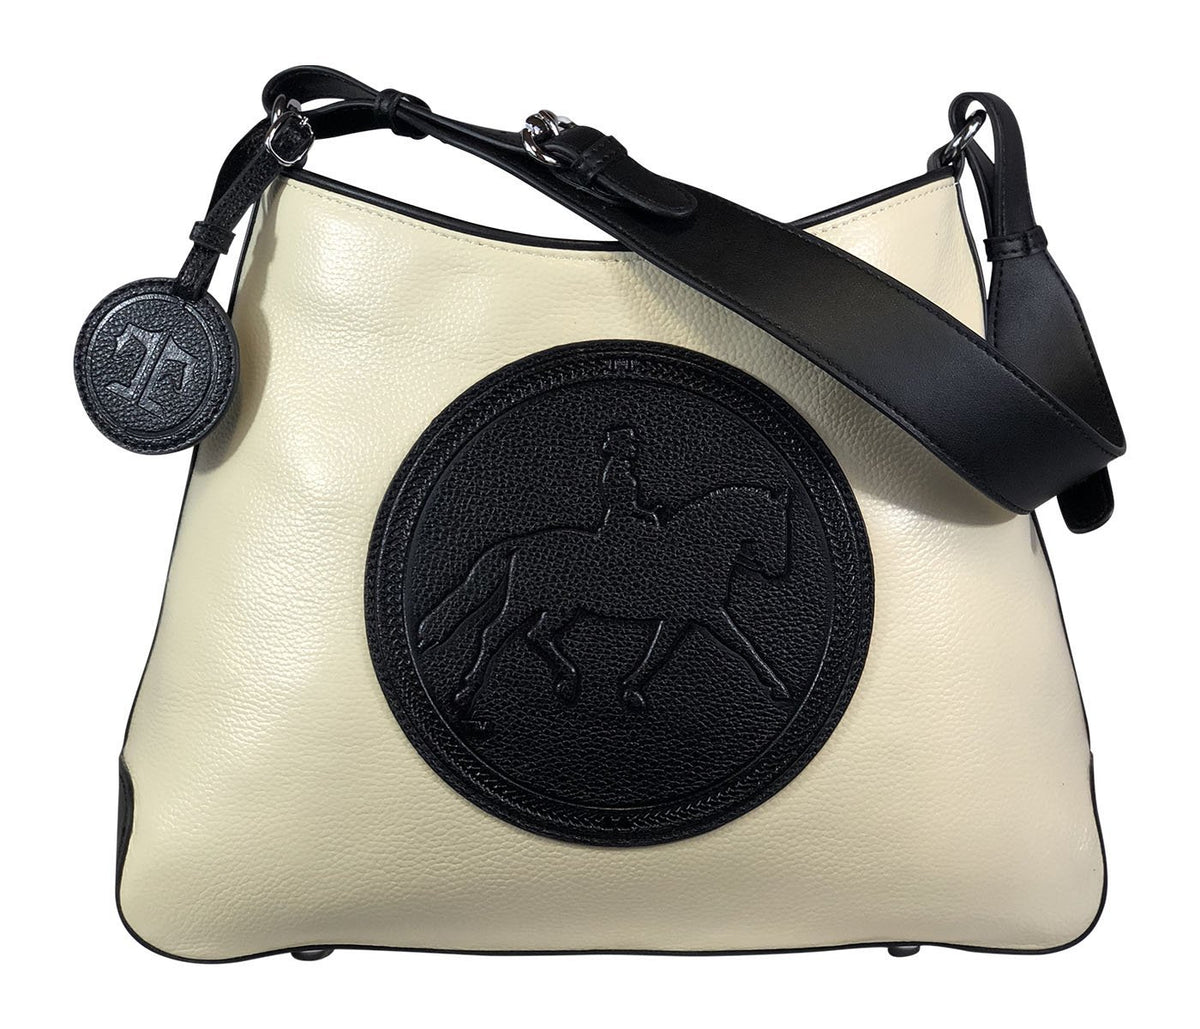 Tucker Tweed Leather Handbags Ivory/Black / Dressage The Tweed Manor Tote: Dressage